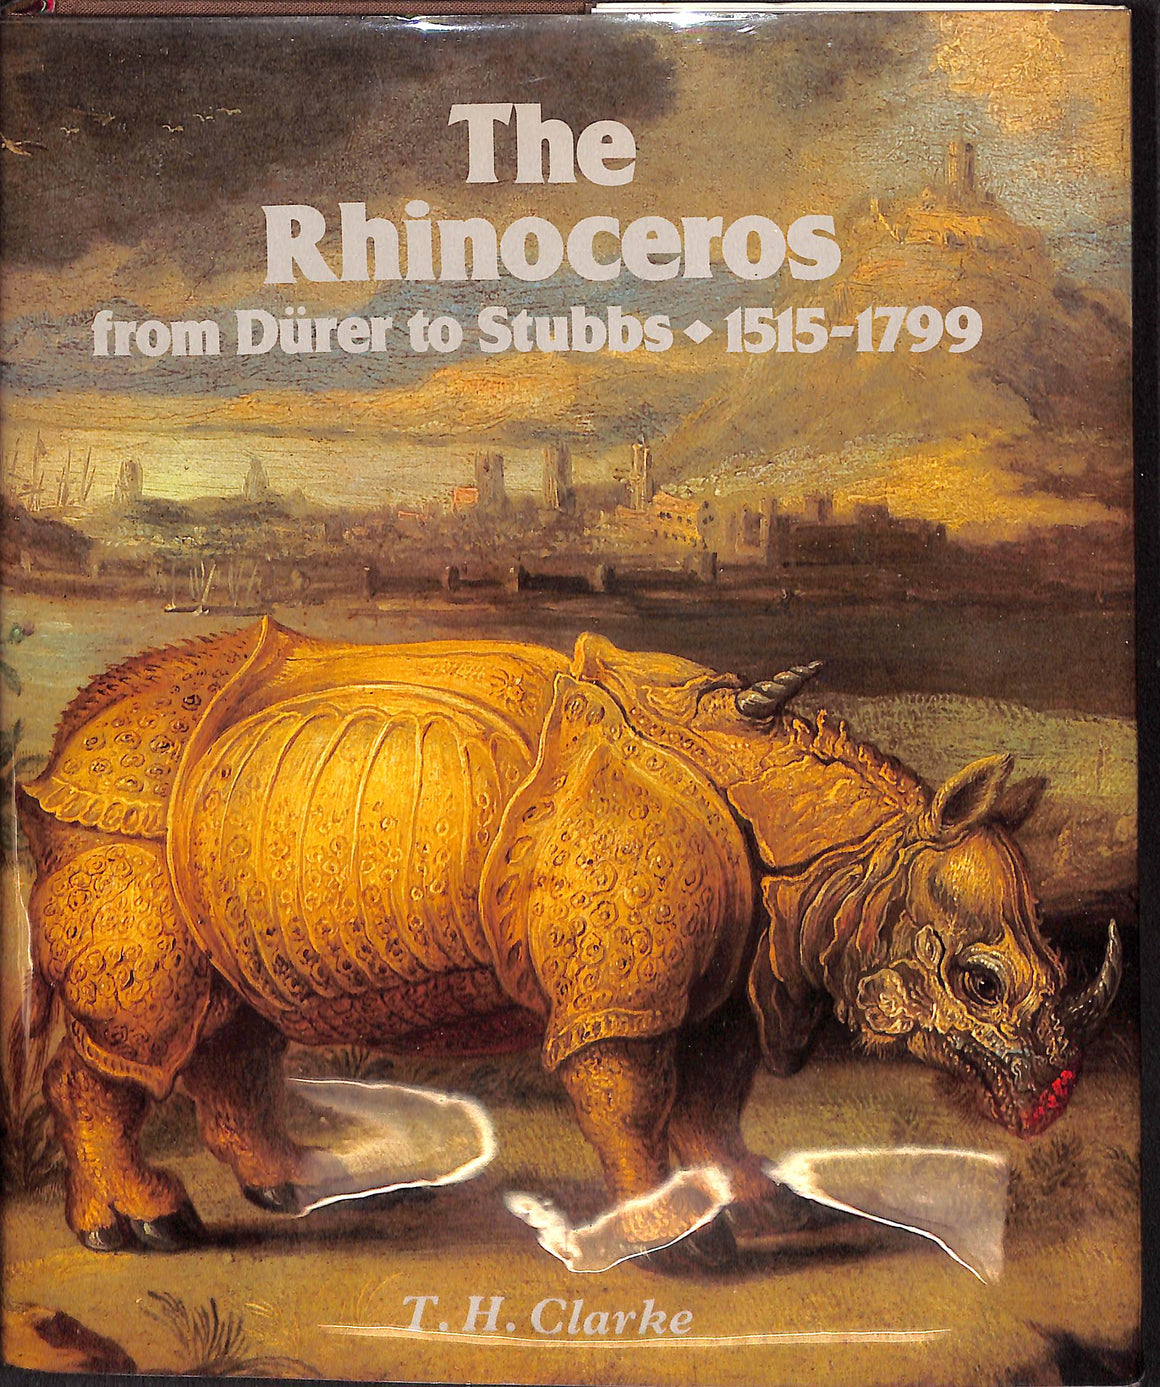 The Rhinoceros: From Durer to Stubbs: 1515-1799